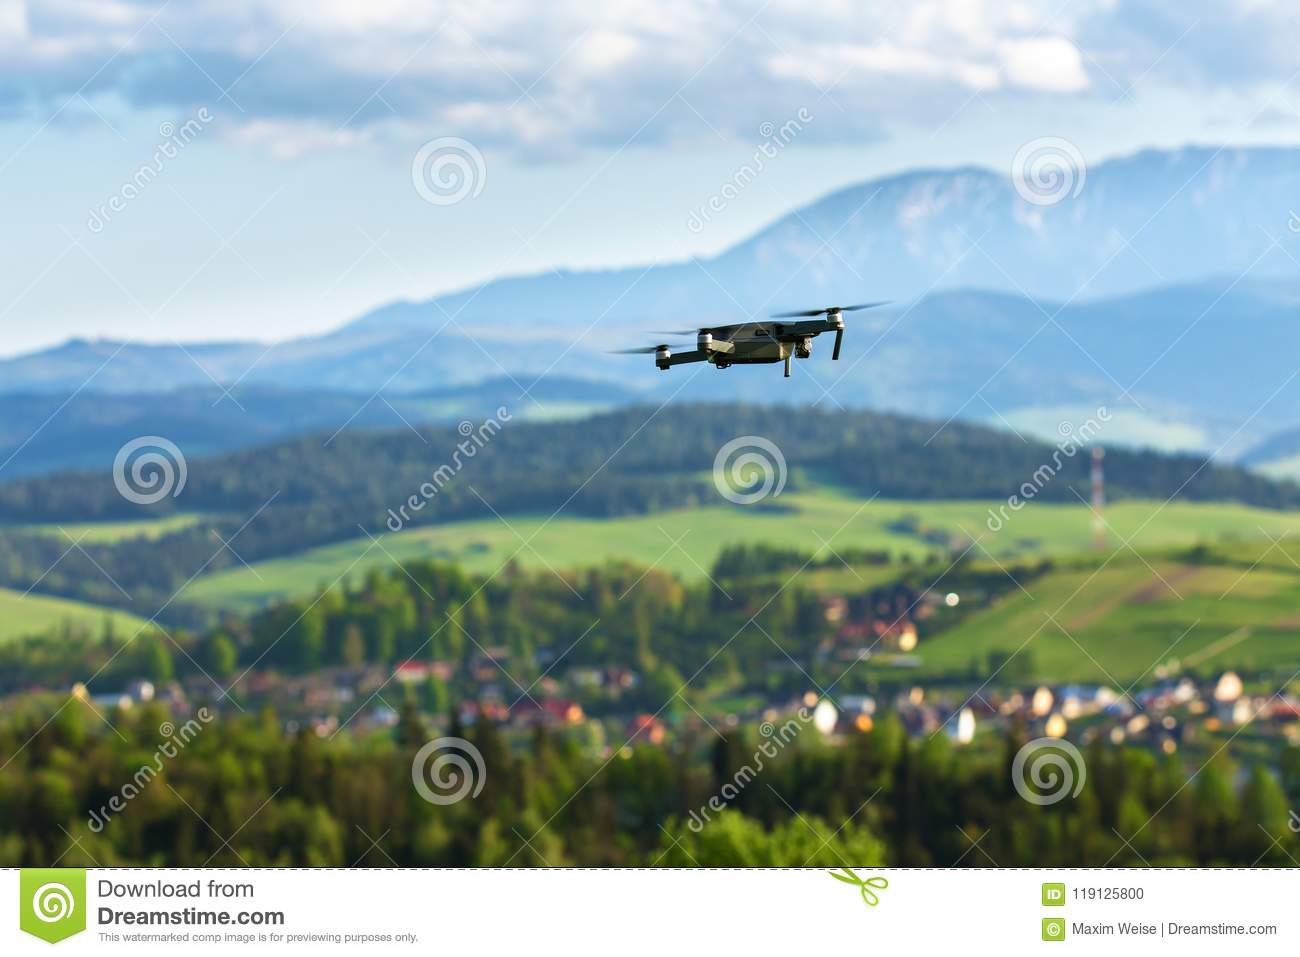 Aerial Photography And Videography  Drone Flying Over